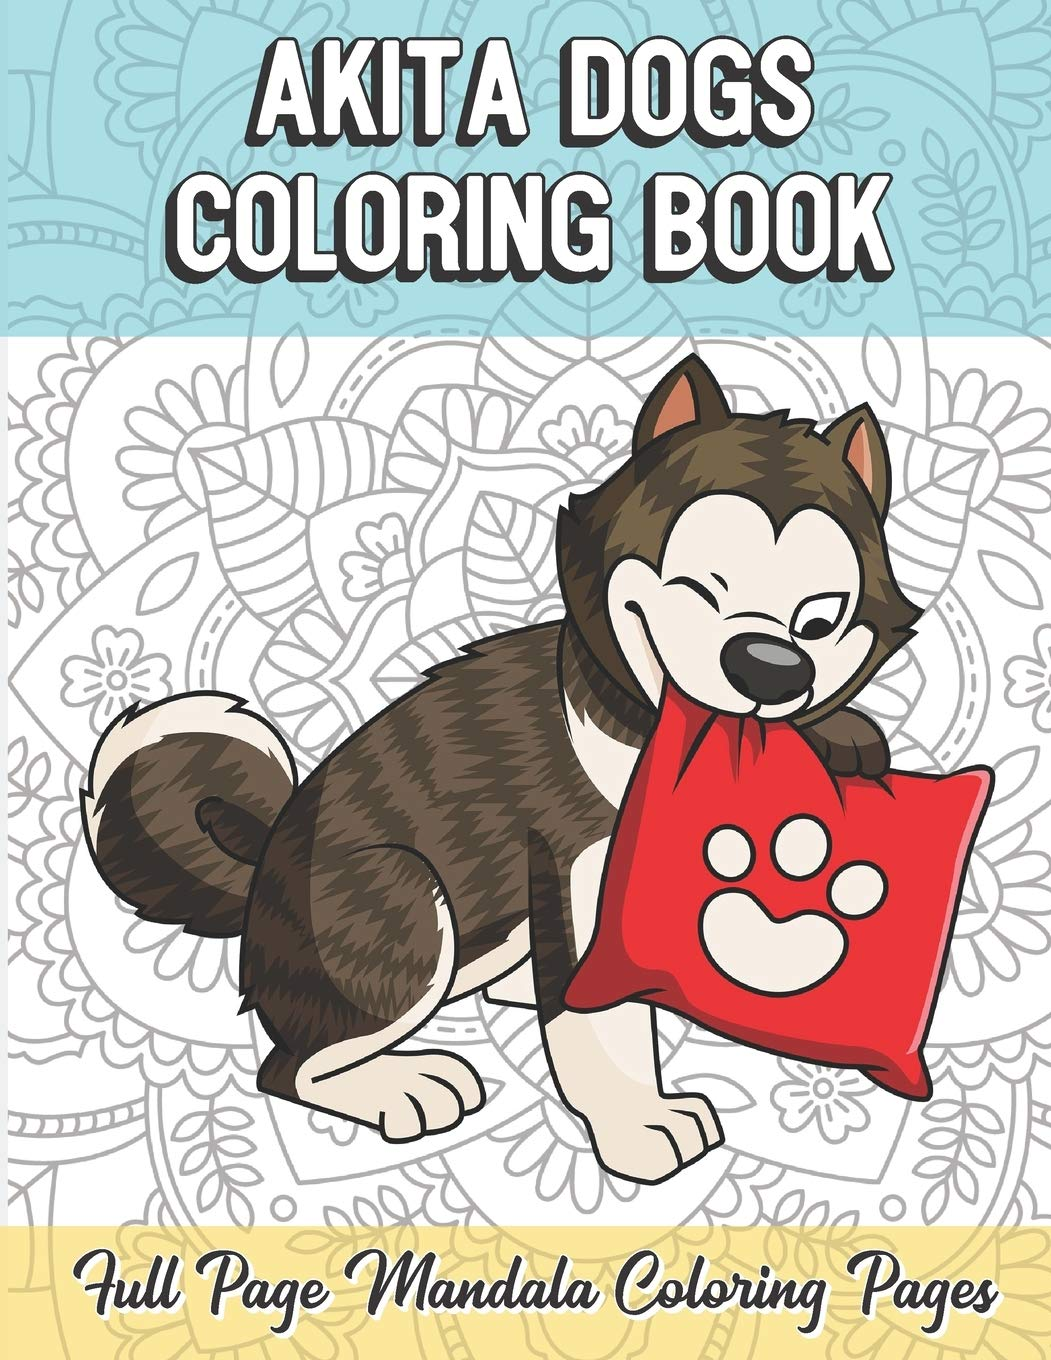 Akita Dogs Coloring Book Full Page Mandala Coloring Pages: Color Book with Mindfulness and Stress Relieving Designs with…